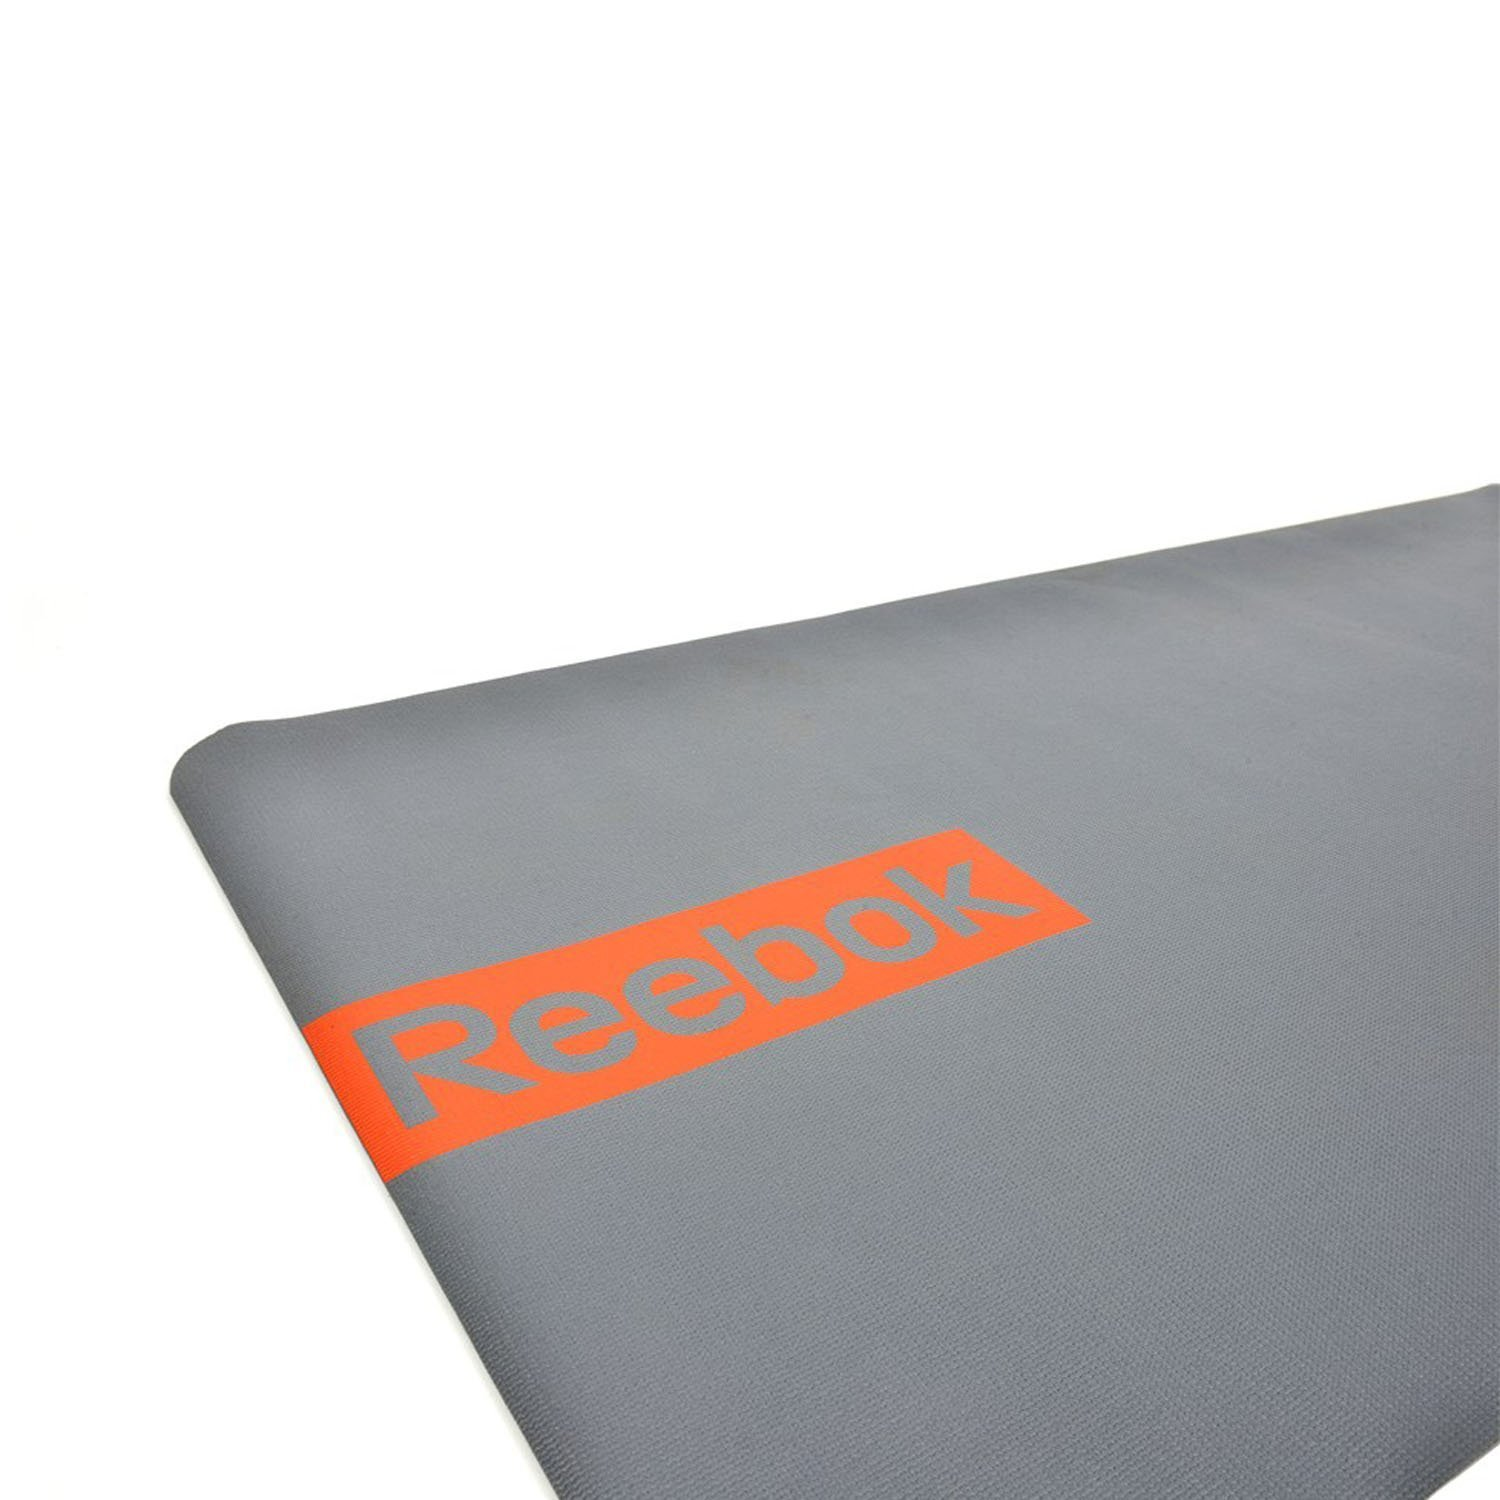 Reebok RSYG-11024 - Colchoneta de Yoga, Color Gris: Amazon ...